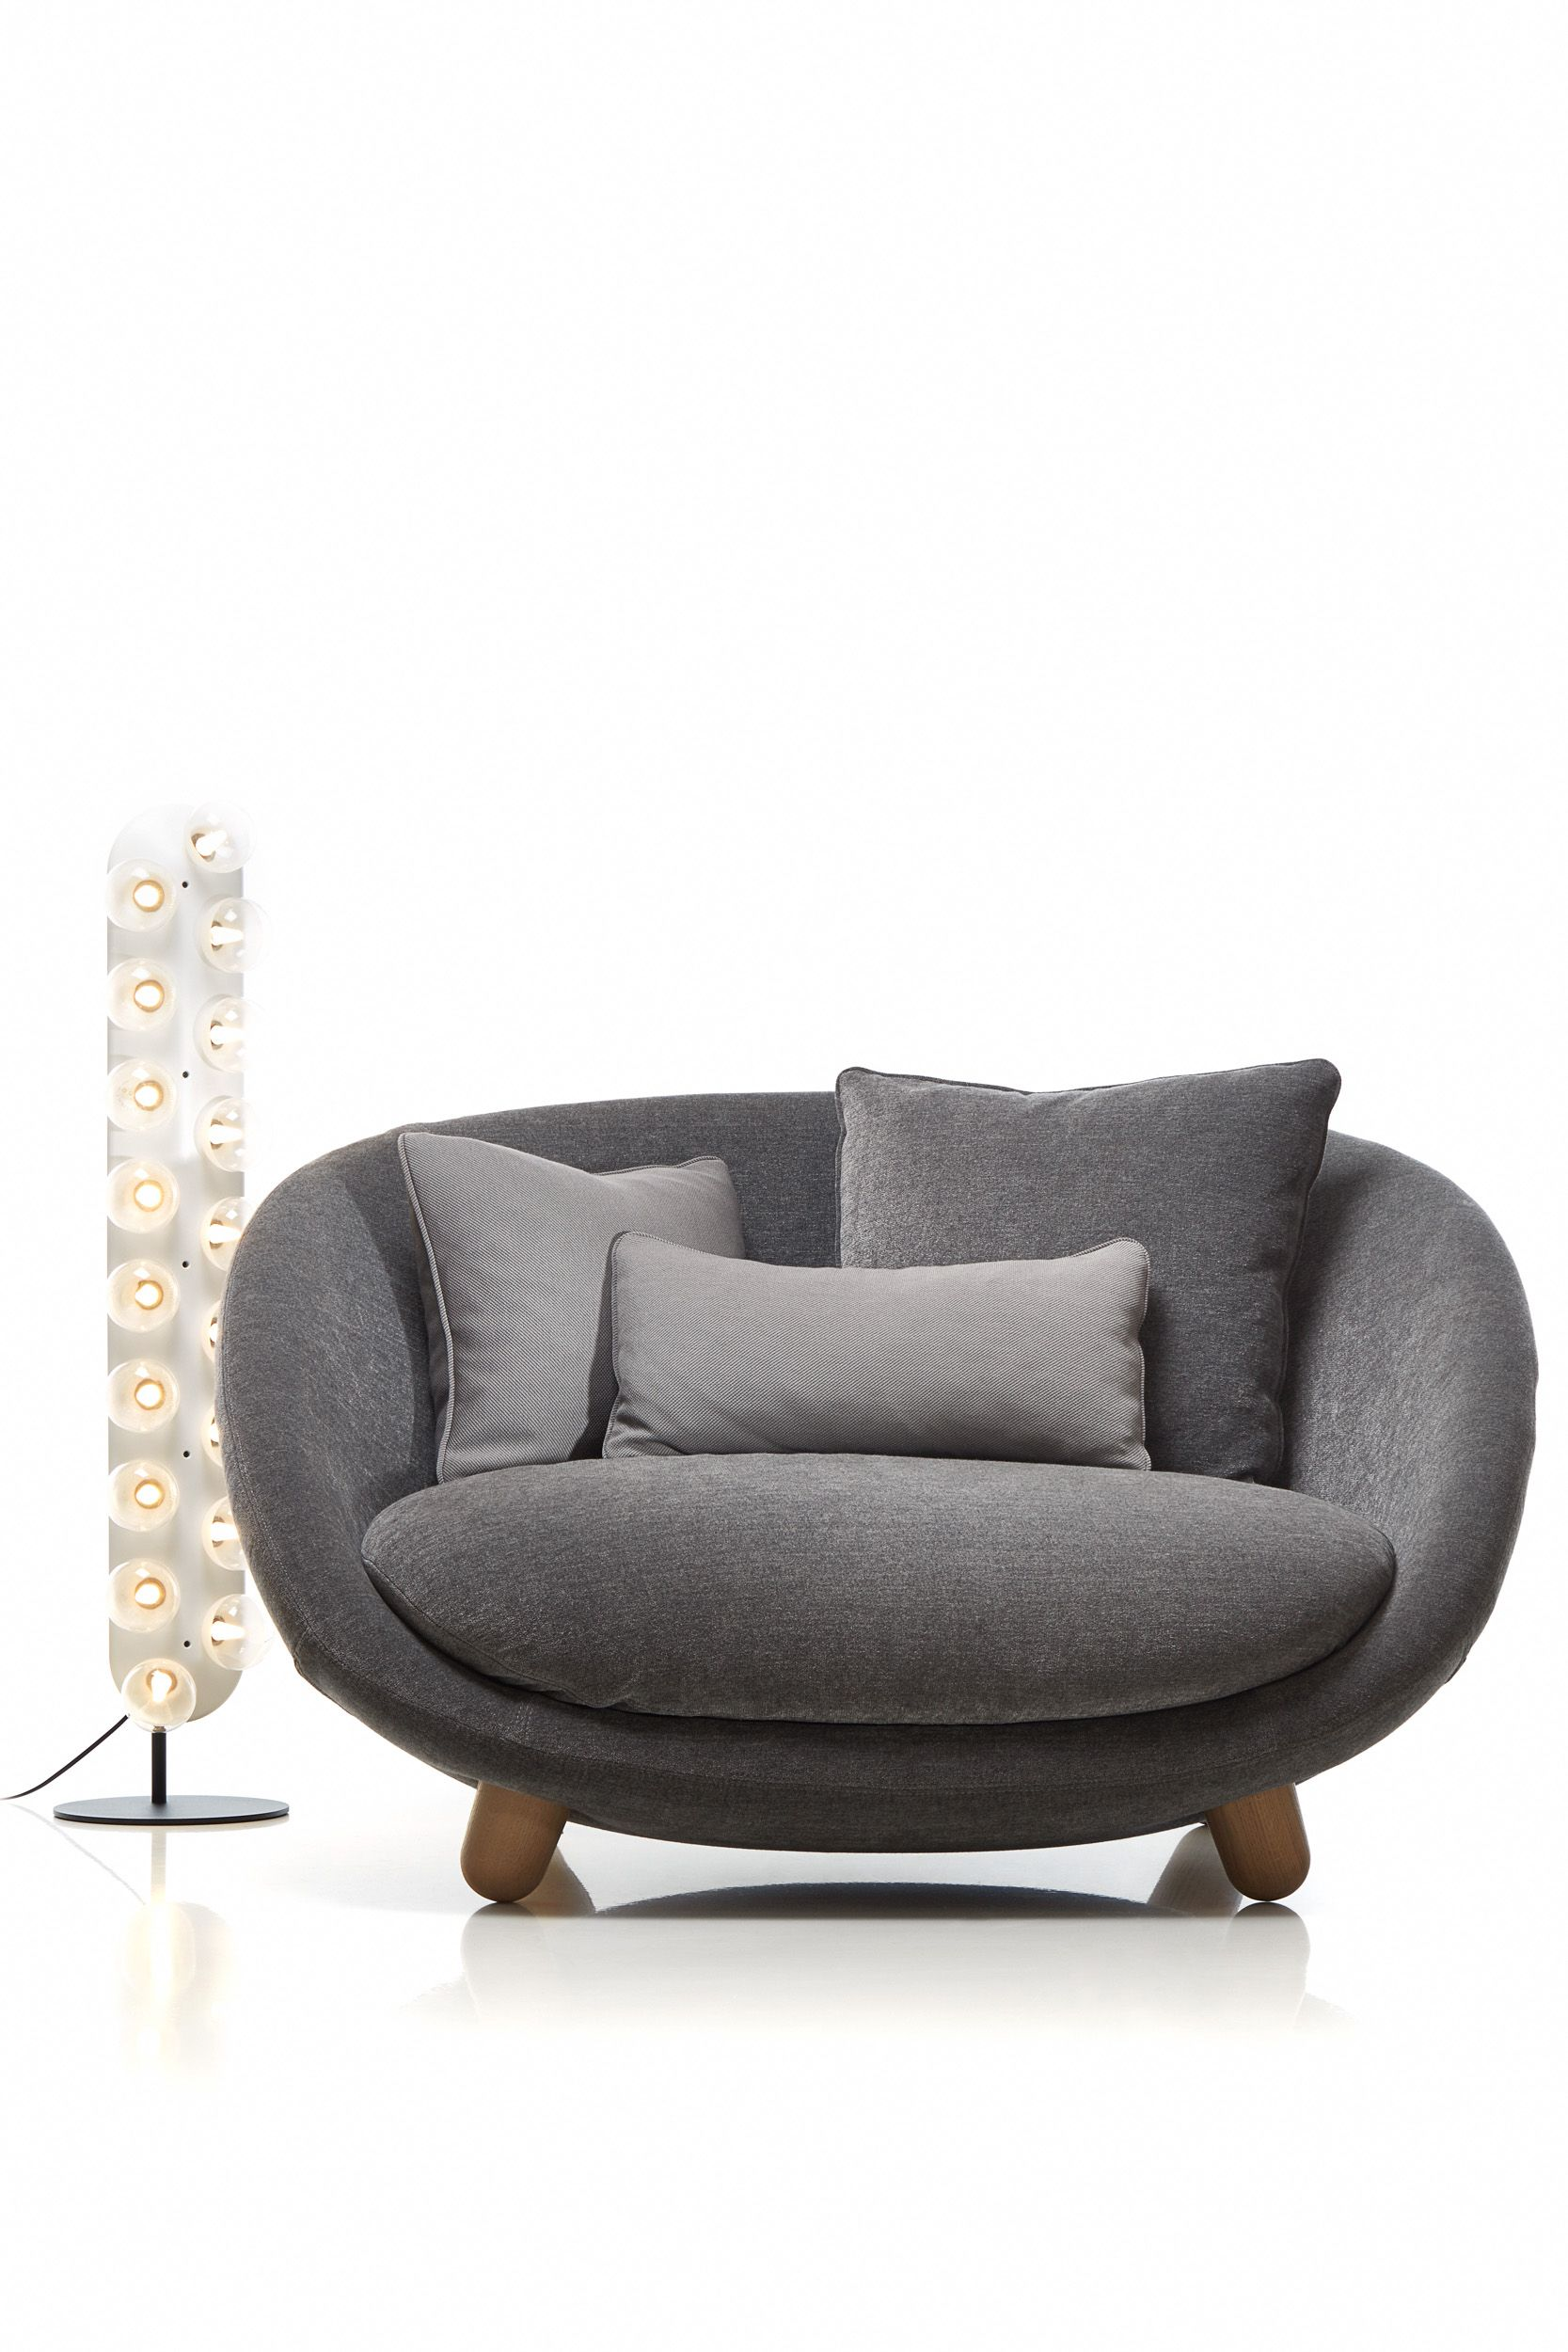 Dinner Sofa Love Sofa By Marcel Wanders For Moooi Love Sofa Marcelwanders